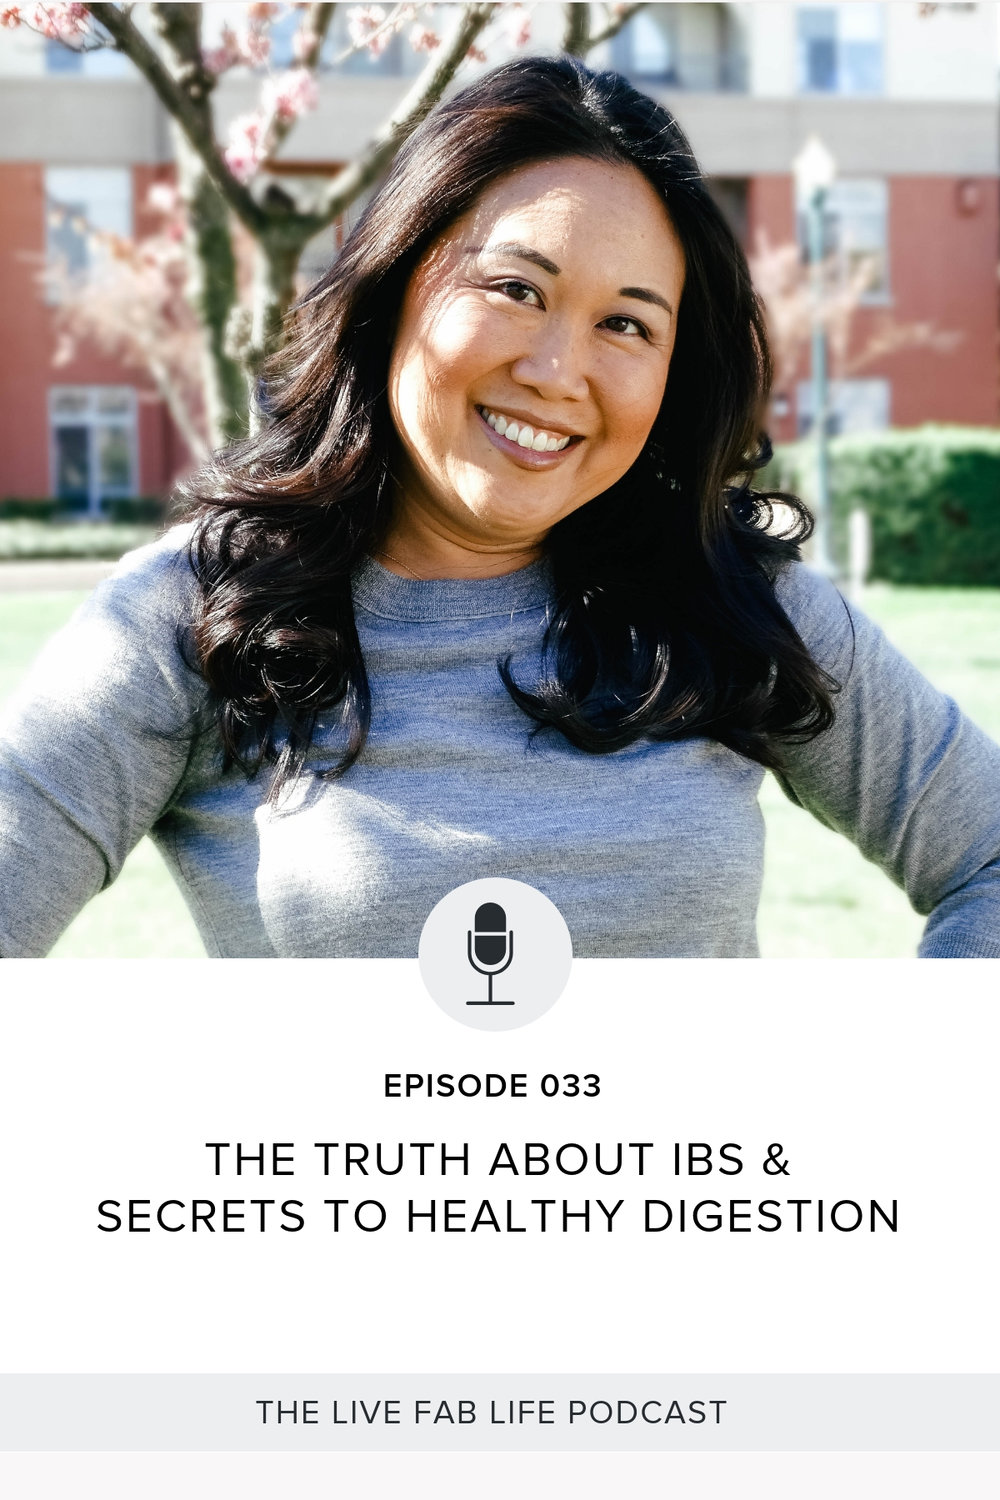 Episode 033: The Truth About IBS & Secrets to Healthy Digestion